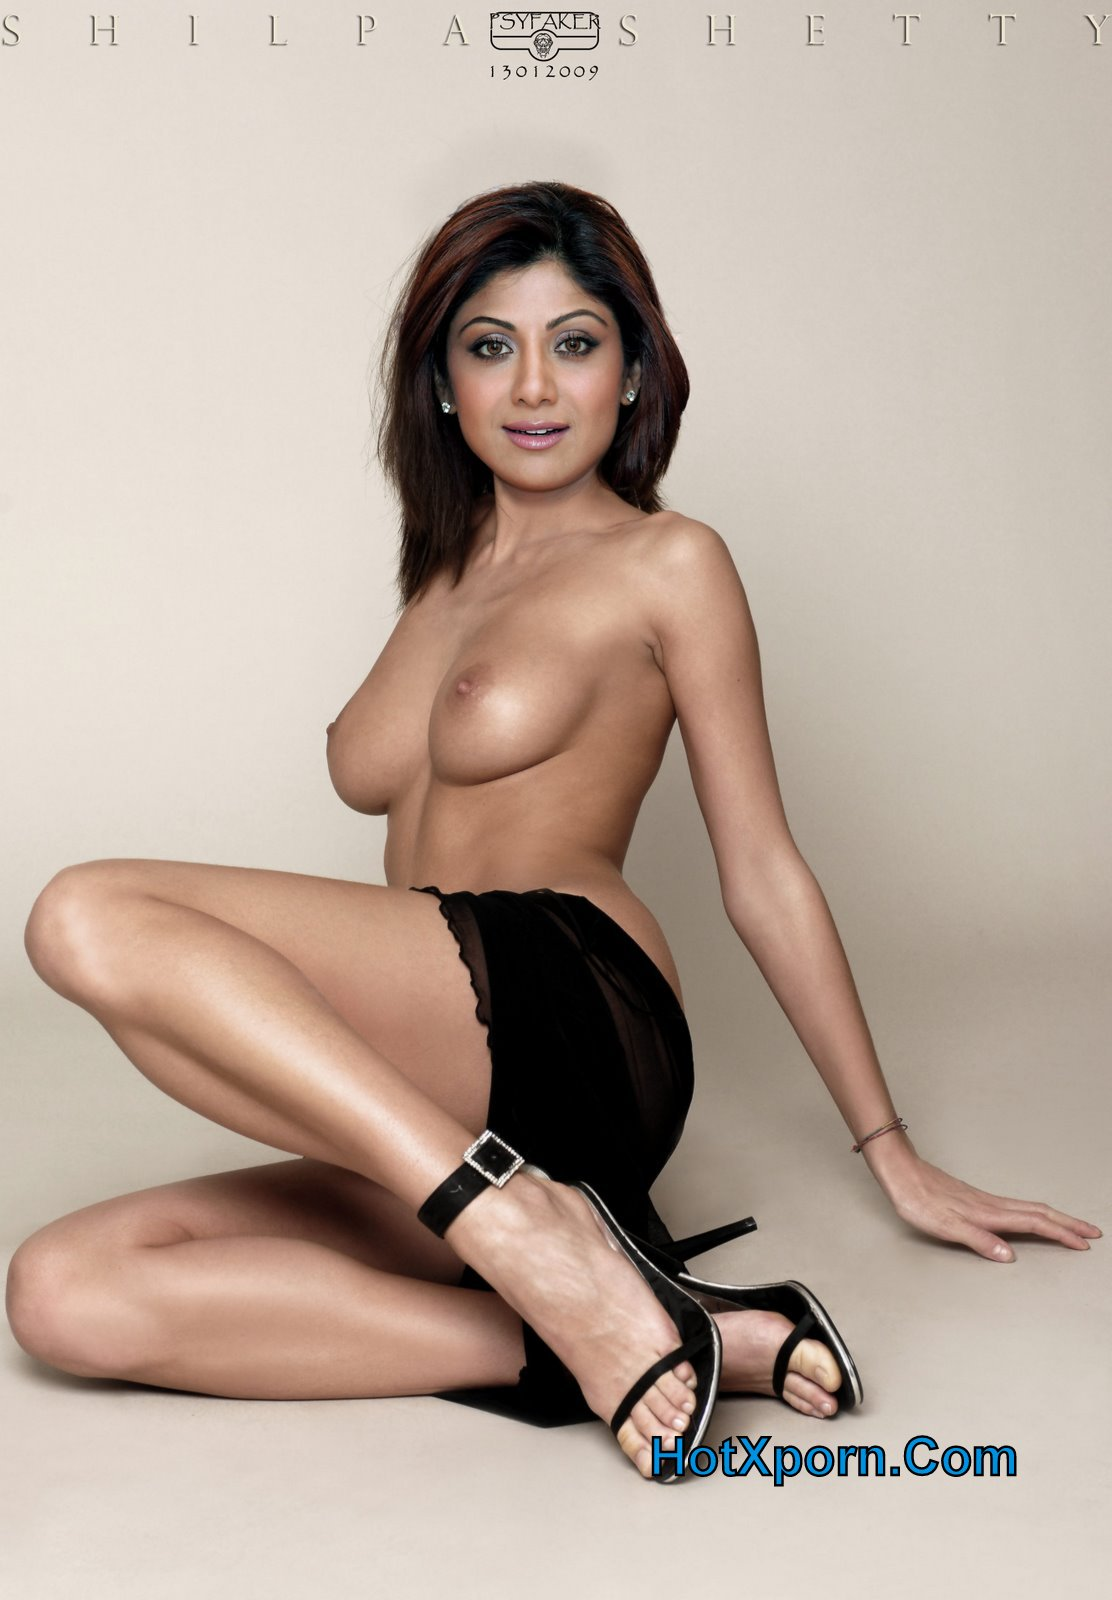 Nude Indian Actress Picture of Shilpa Shetty Big Boobs and Showing ...